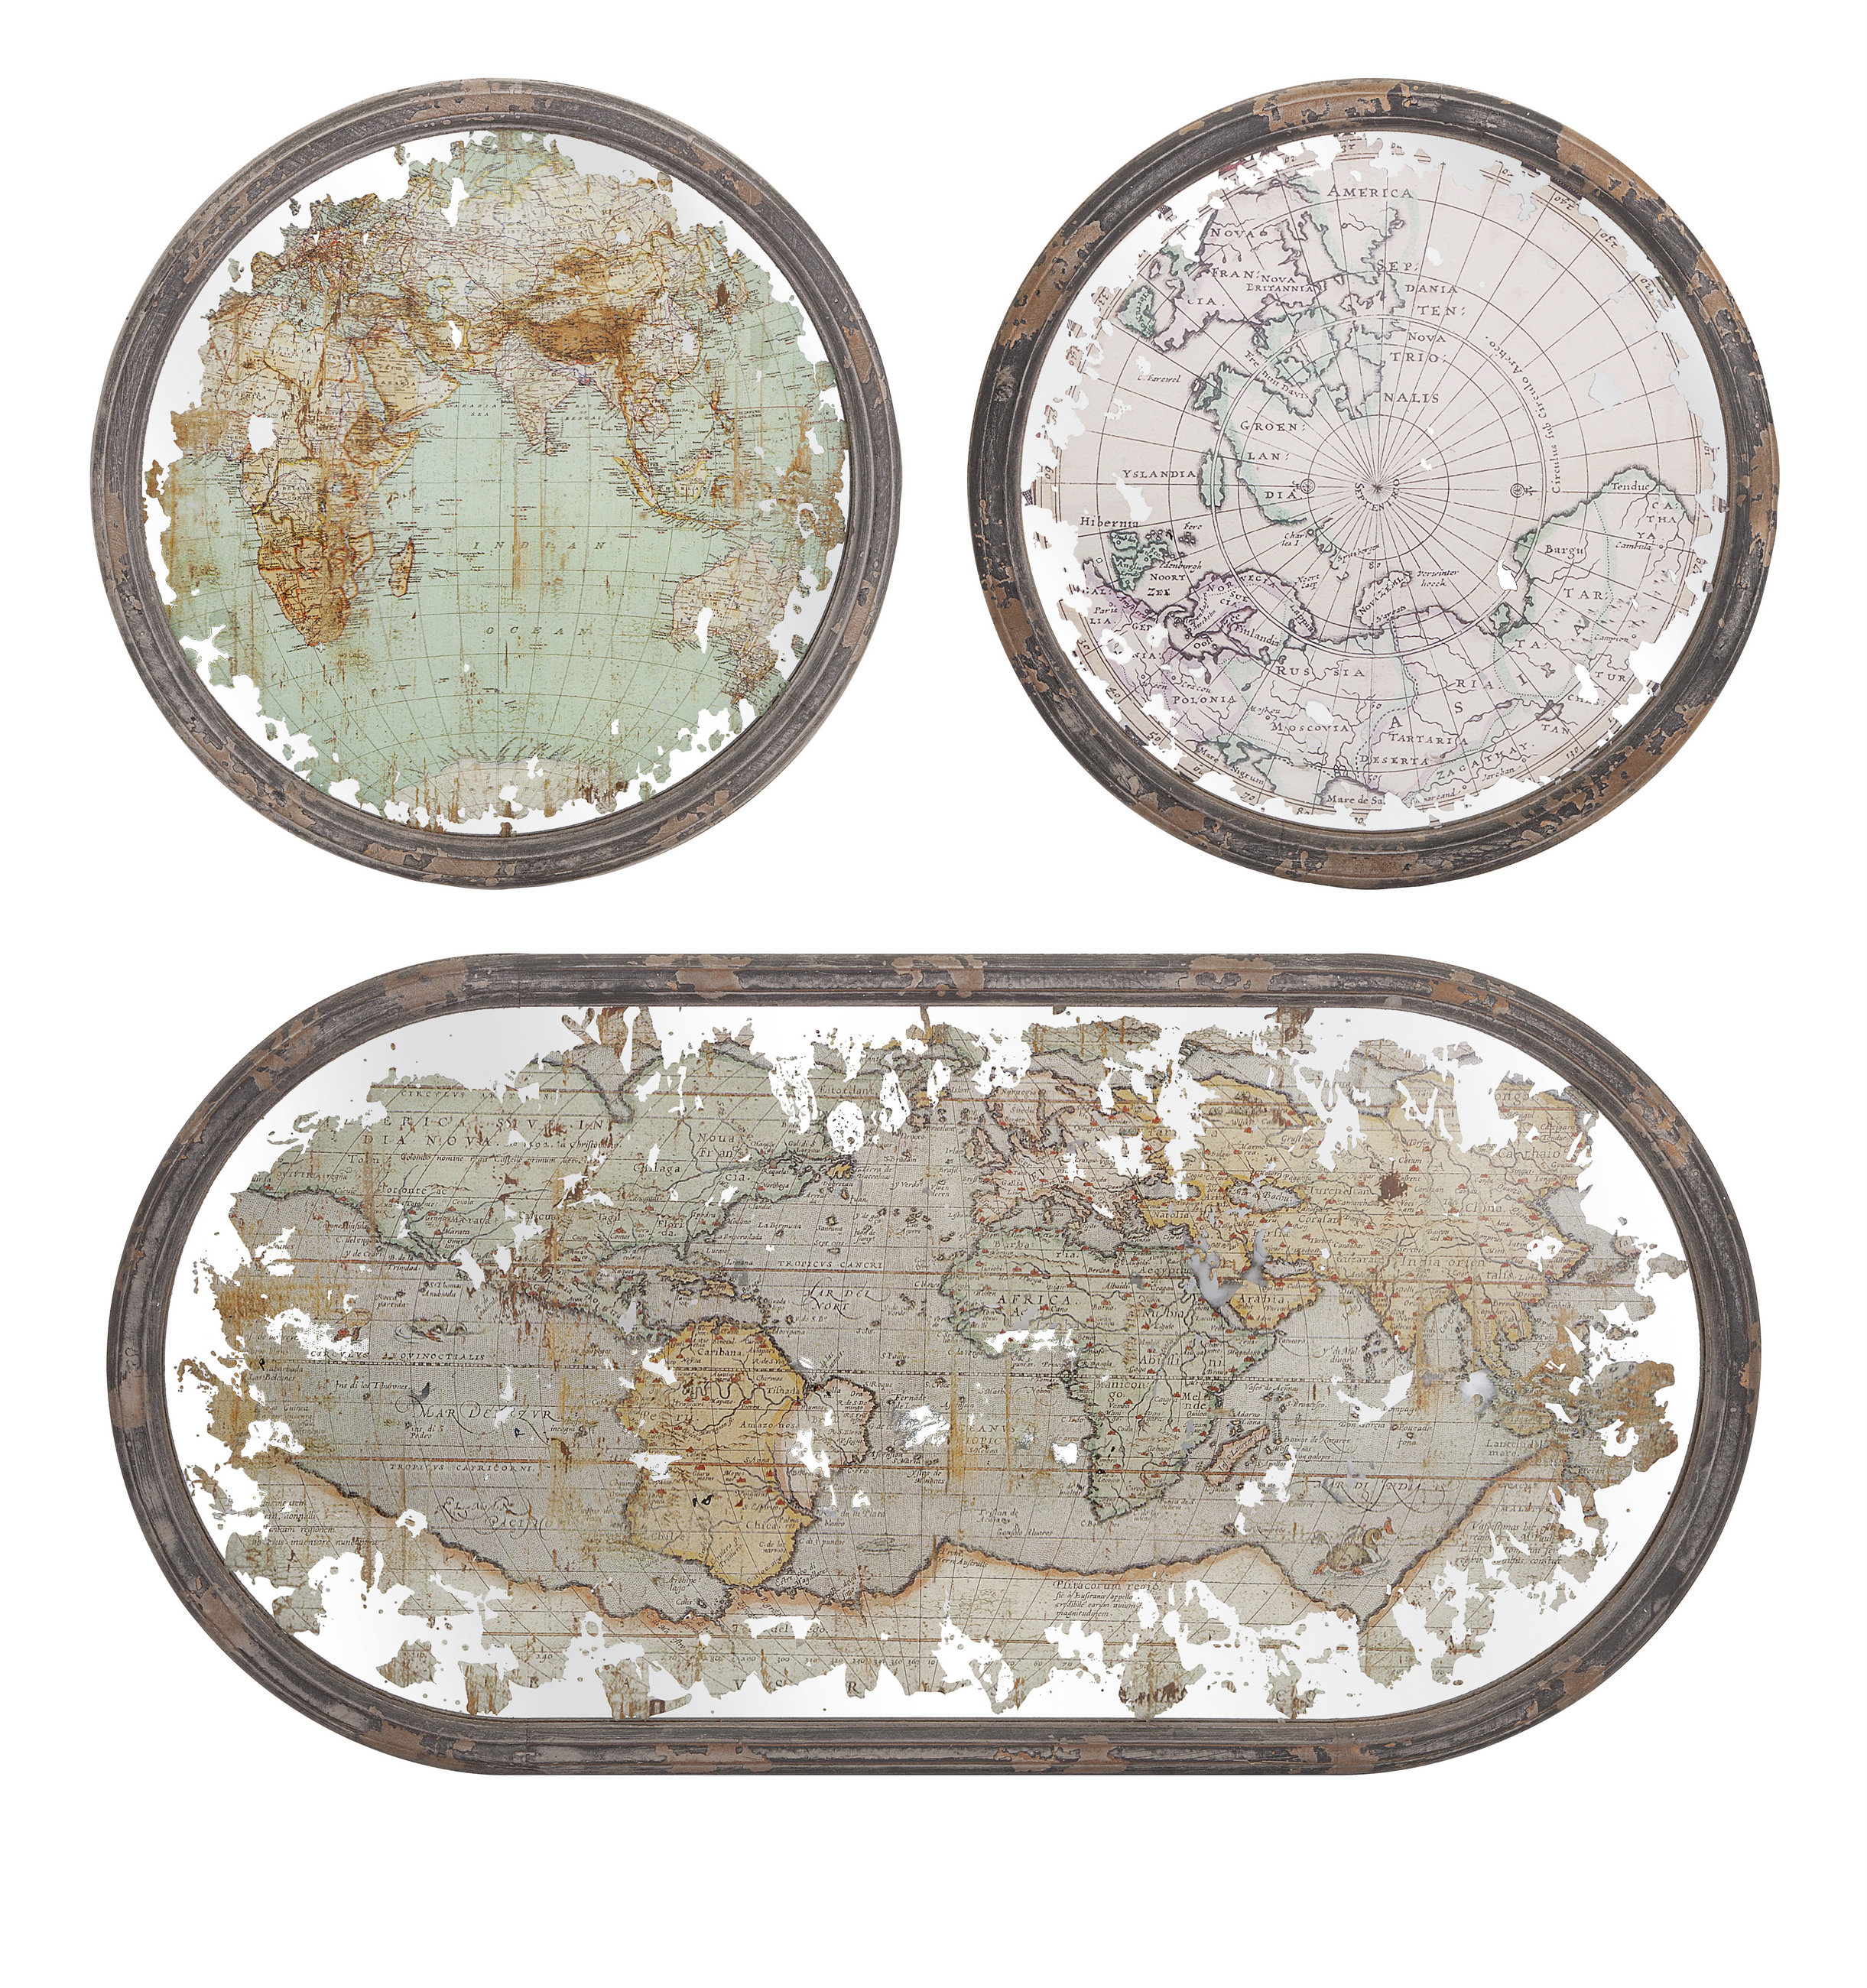 Classy Mirrored Map Wall Decor - Set of 3